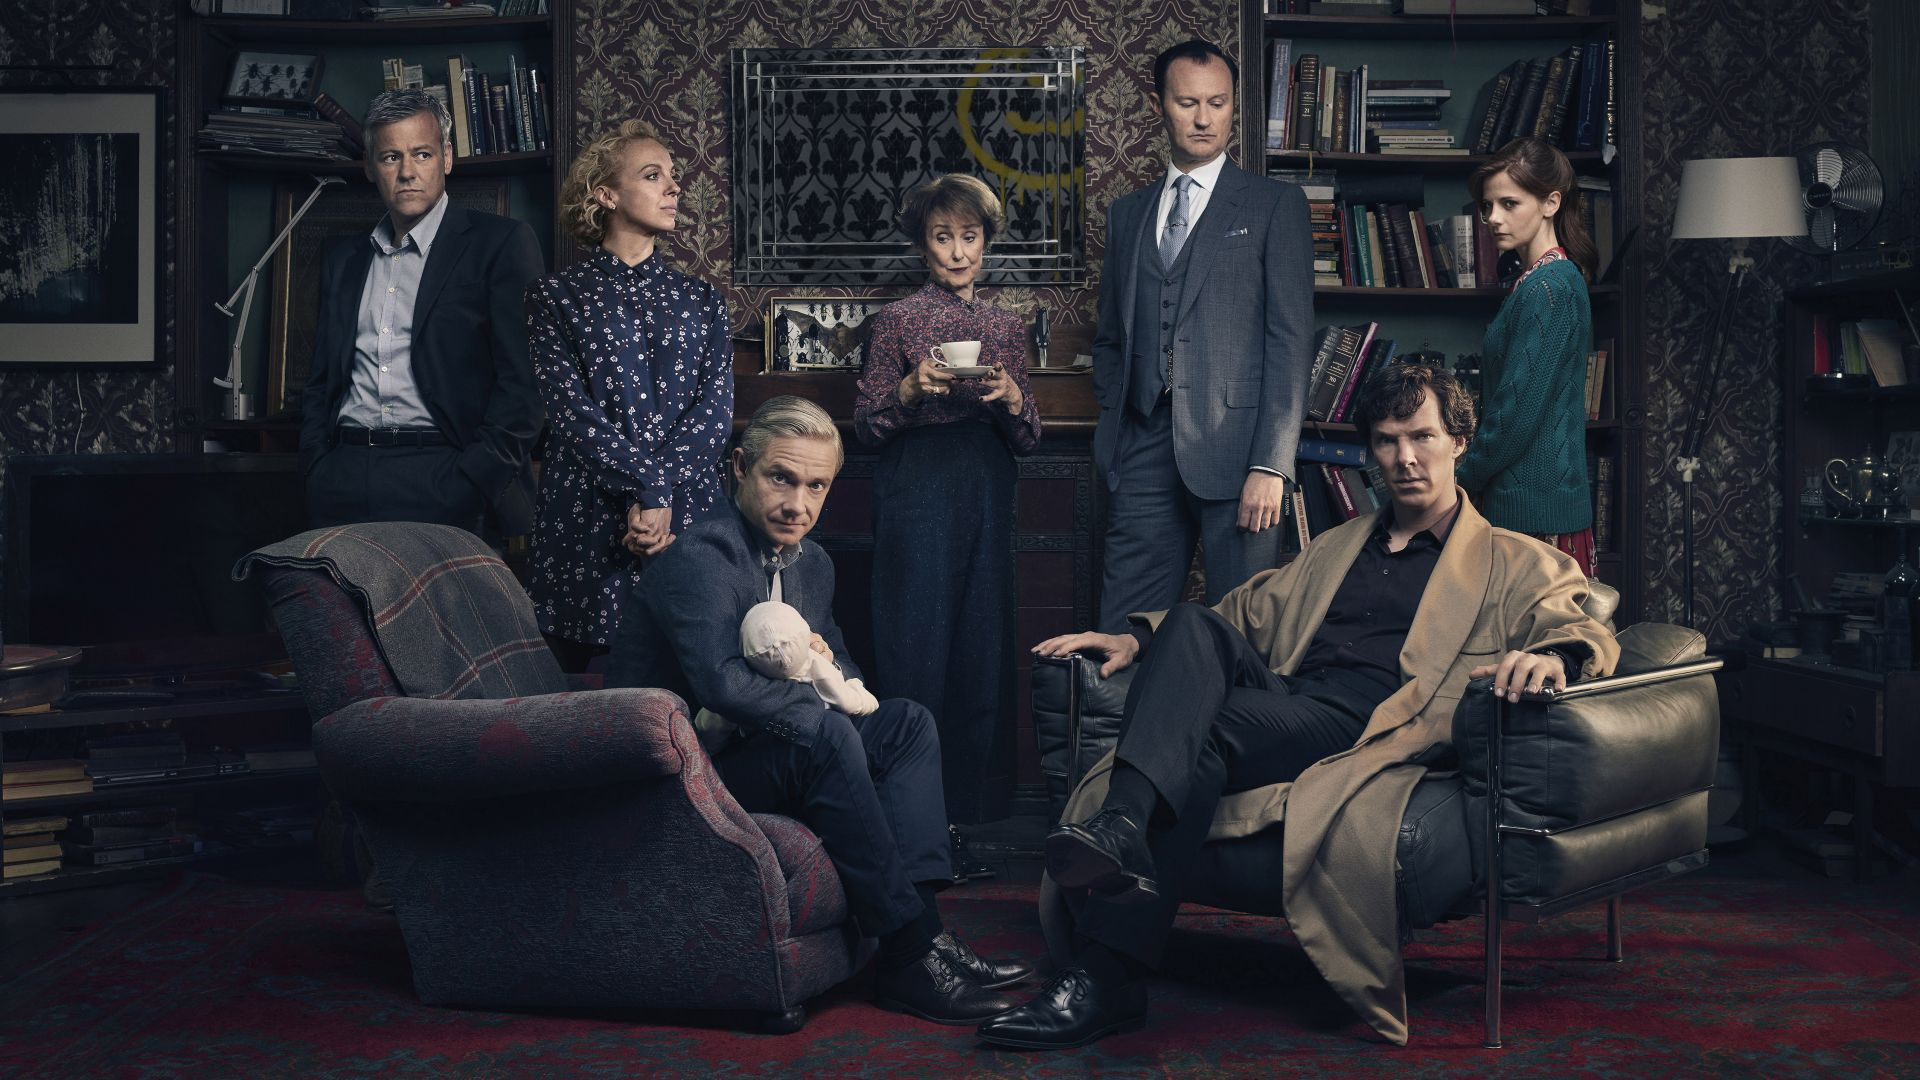 Sherlock Season 4, Benedict Cumberbatch, Martin Freeman, Louise Brealey, TV Series, 4k (horizontal)